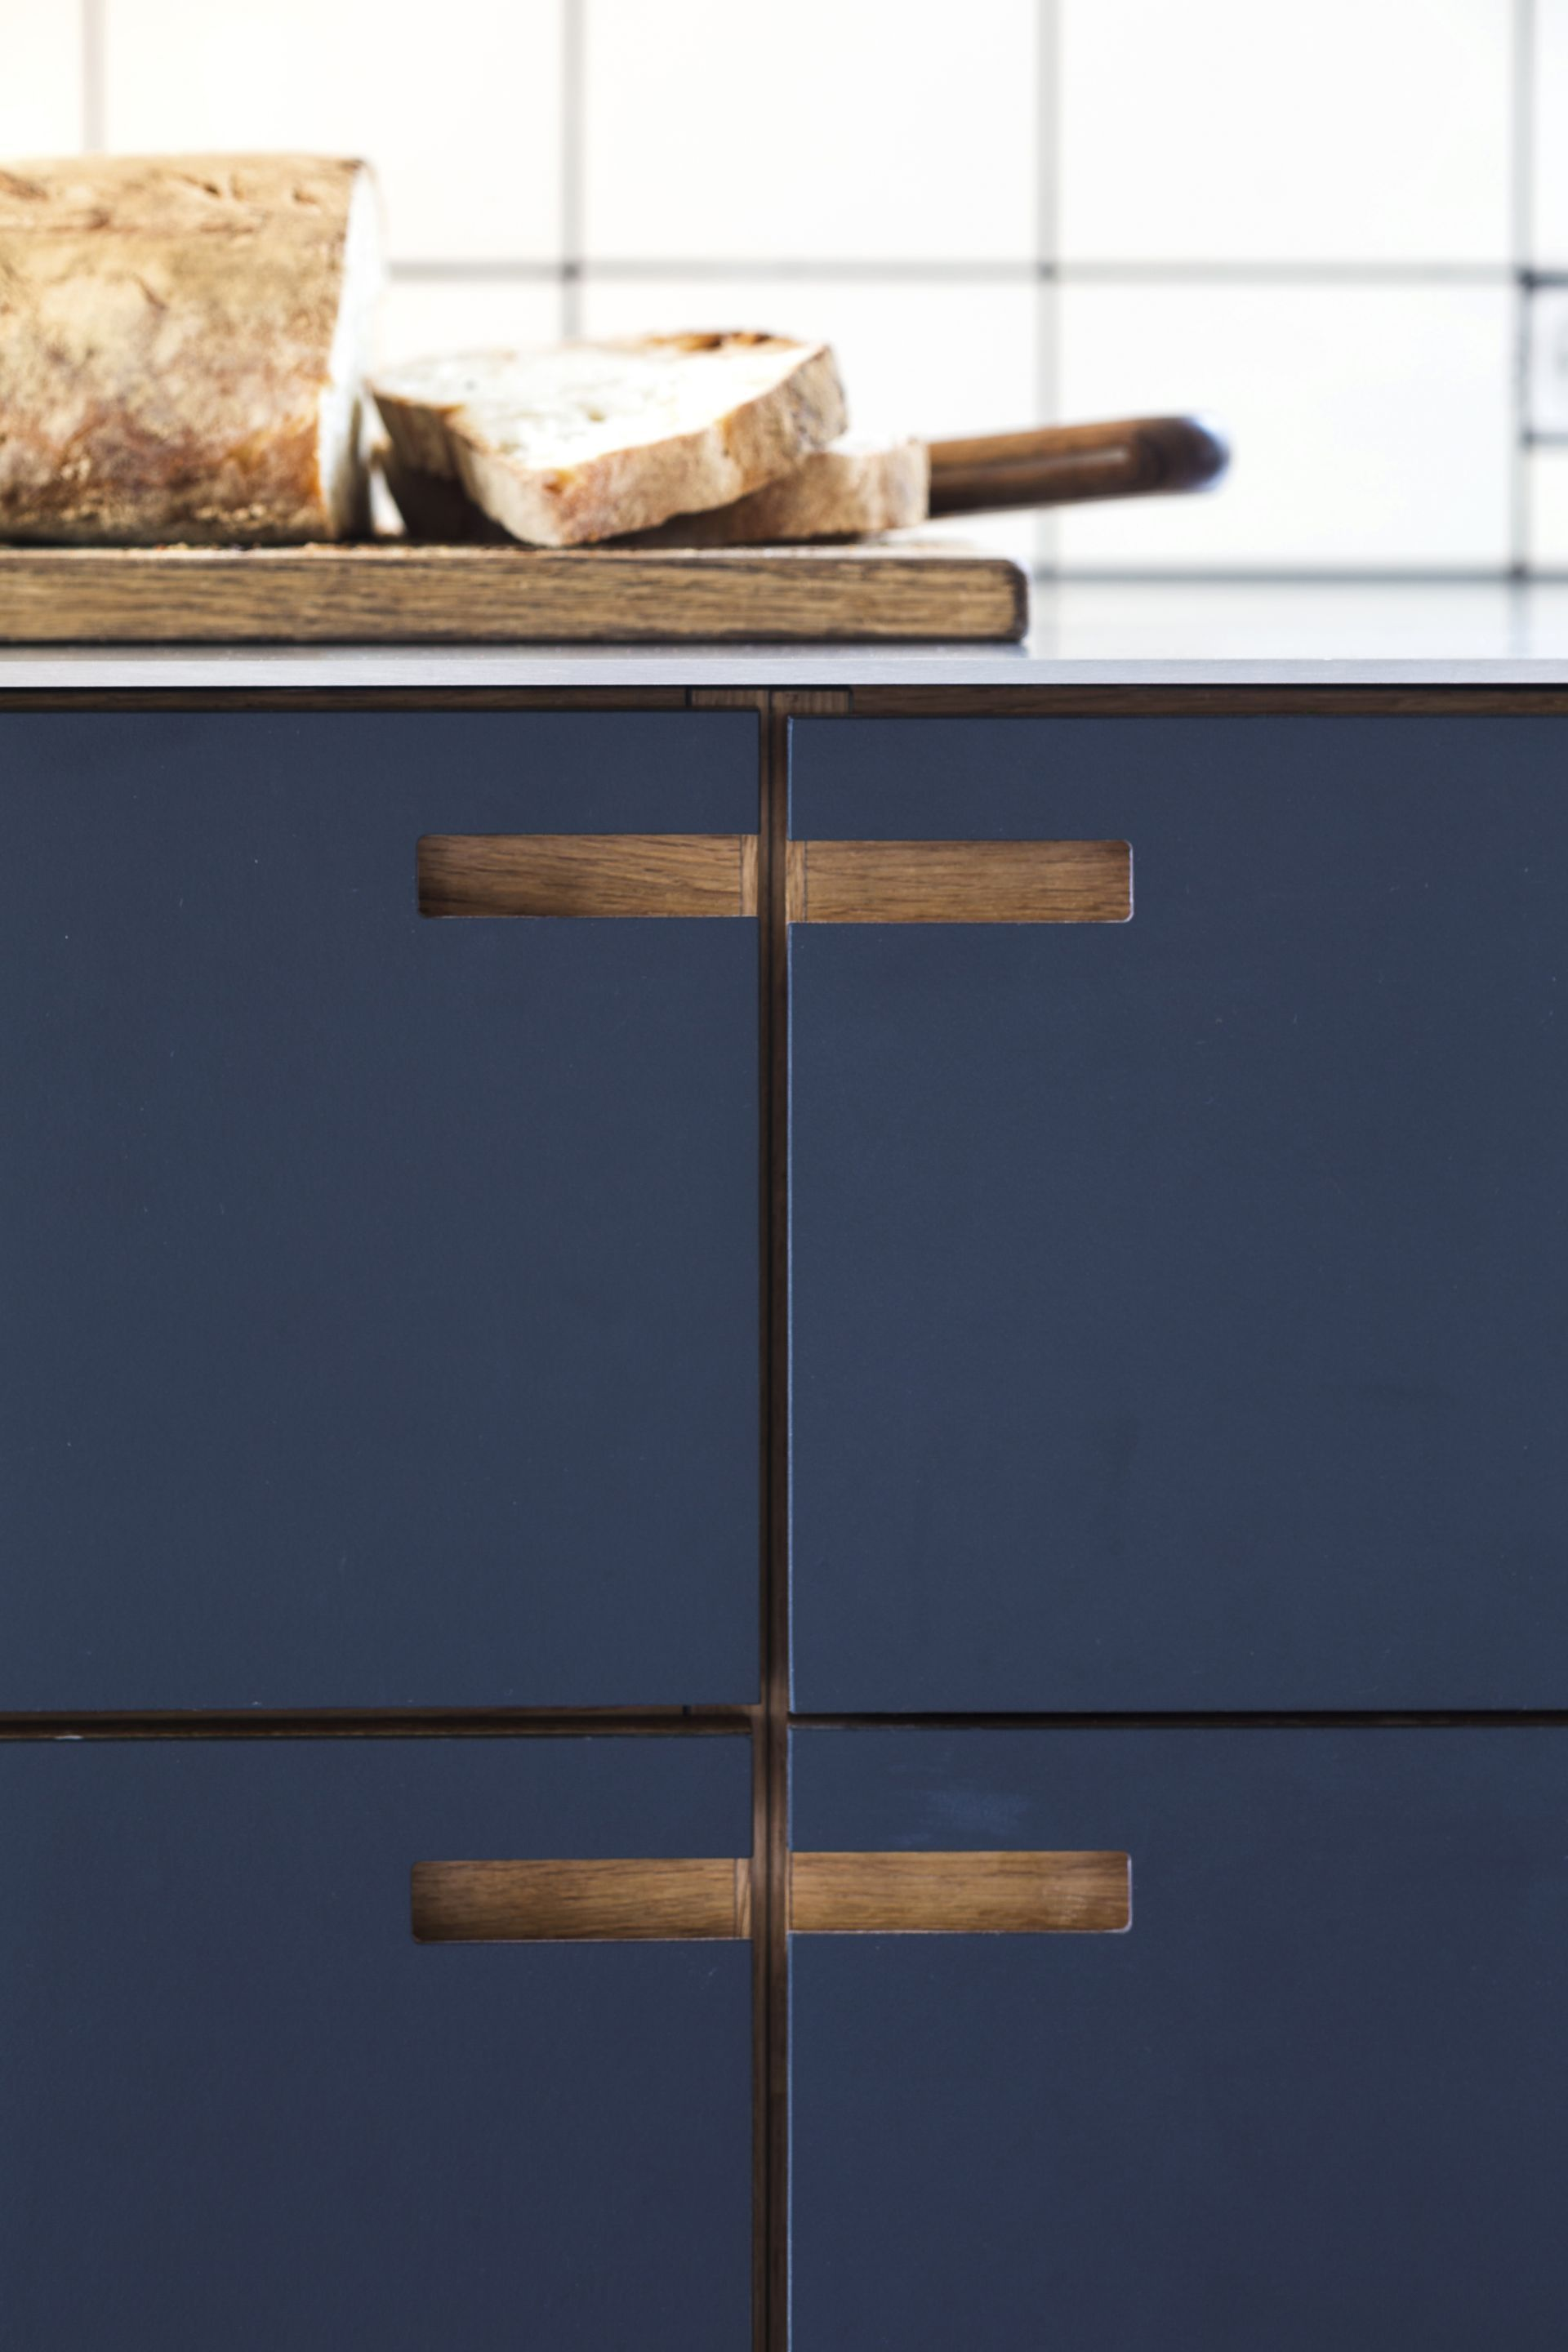 recessed finger pulls kitchen denmark bo bedre woodworking love this kitchen handle detail